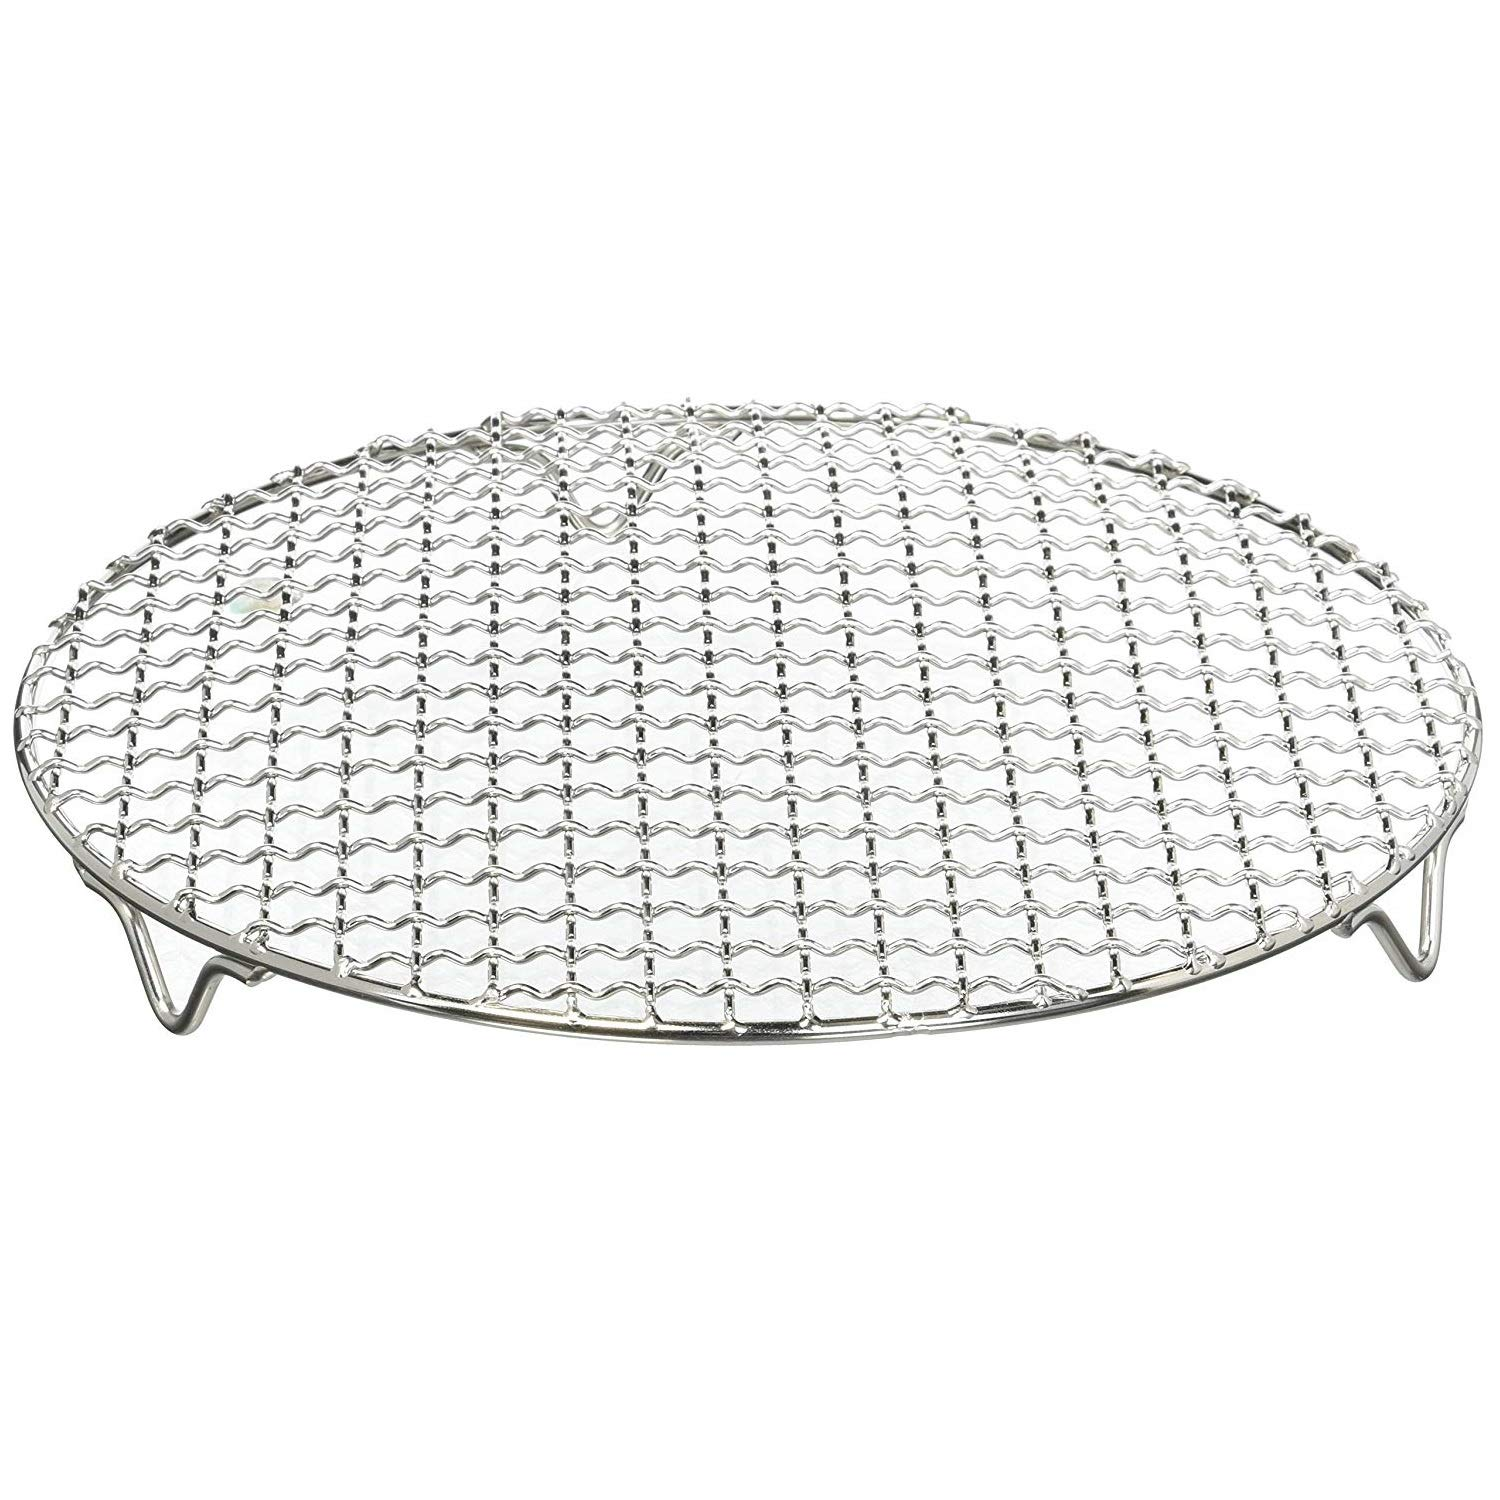 Chris-Wang 1Pack Multi-Purpose Round Stainless Steel Cross Wire Steaming Cooling Barbecue Rack /Carbon Baking Net/Grill /Pan Grate with Legs(8.9Inch Dia)